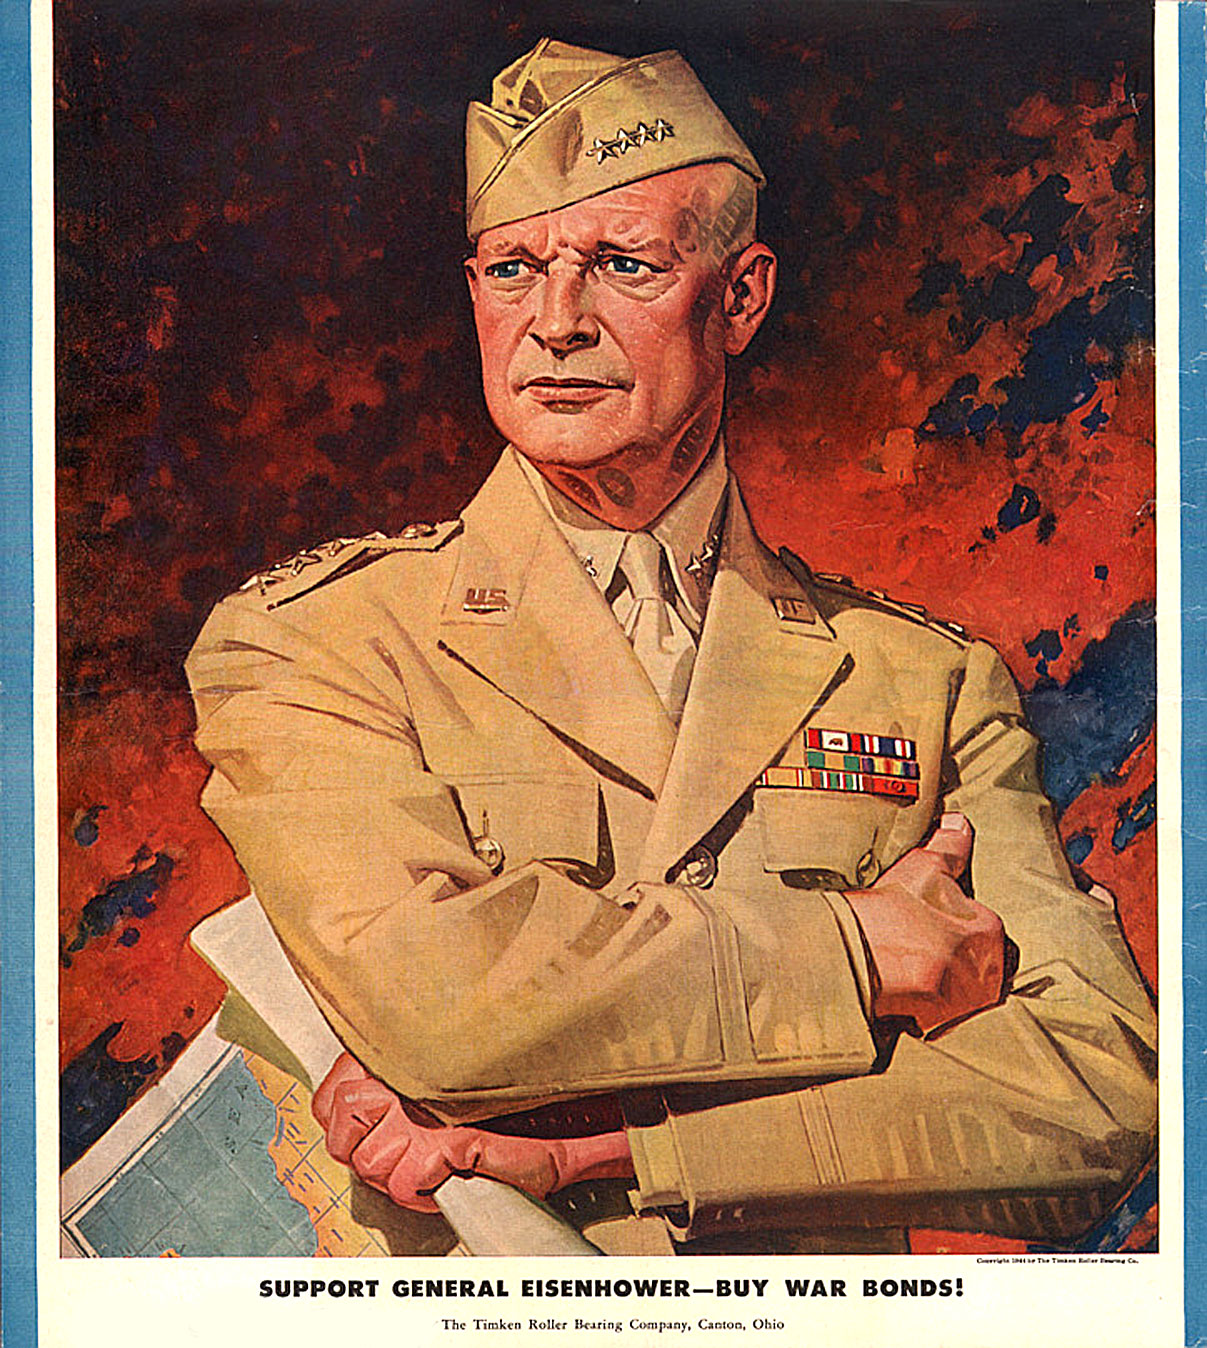 The Timken Roller Bearing Company - 'Buy War Bonds' featuring General Dwight D. Eisenhower - 1944